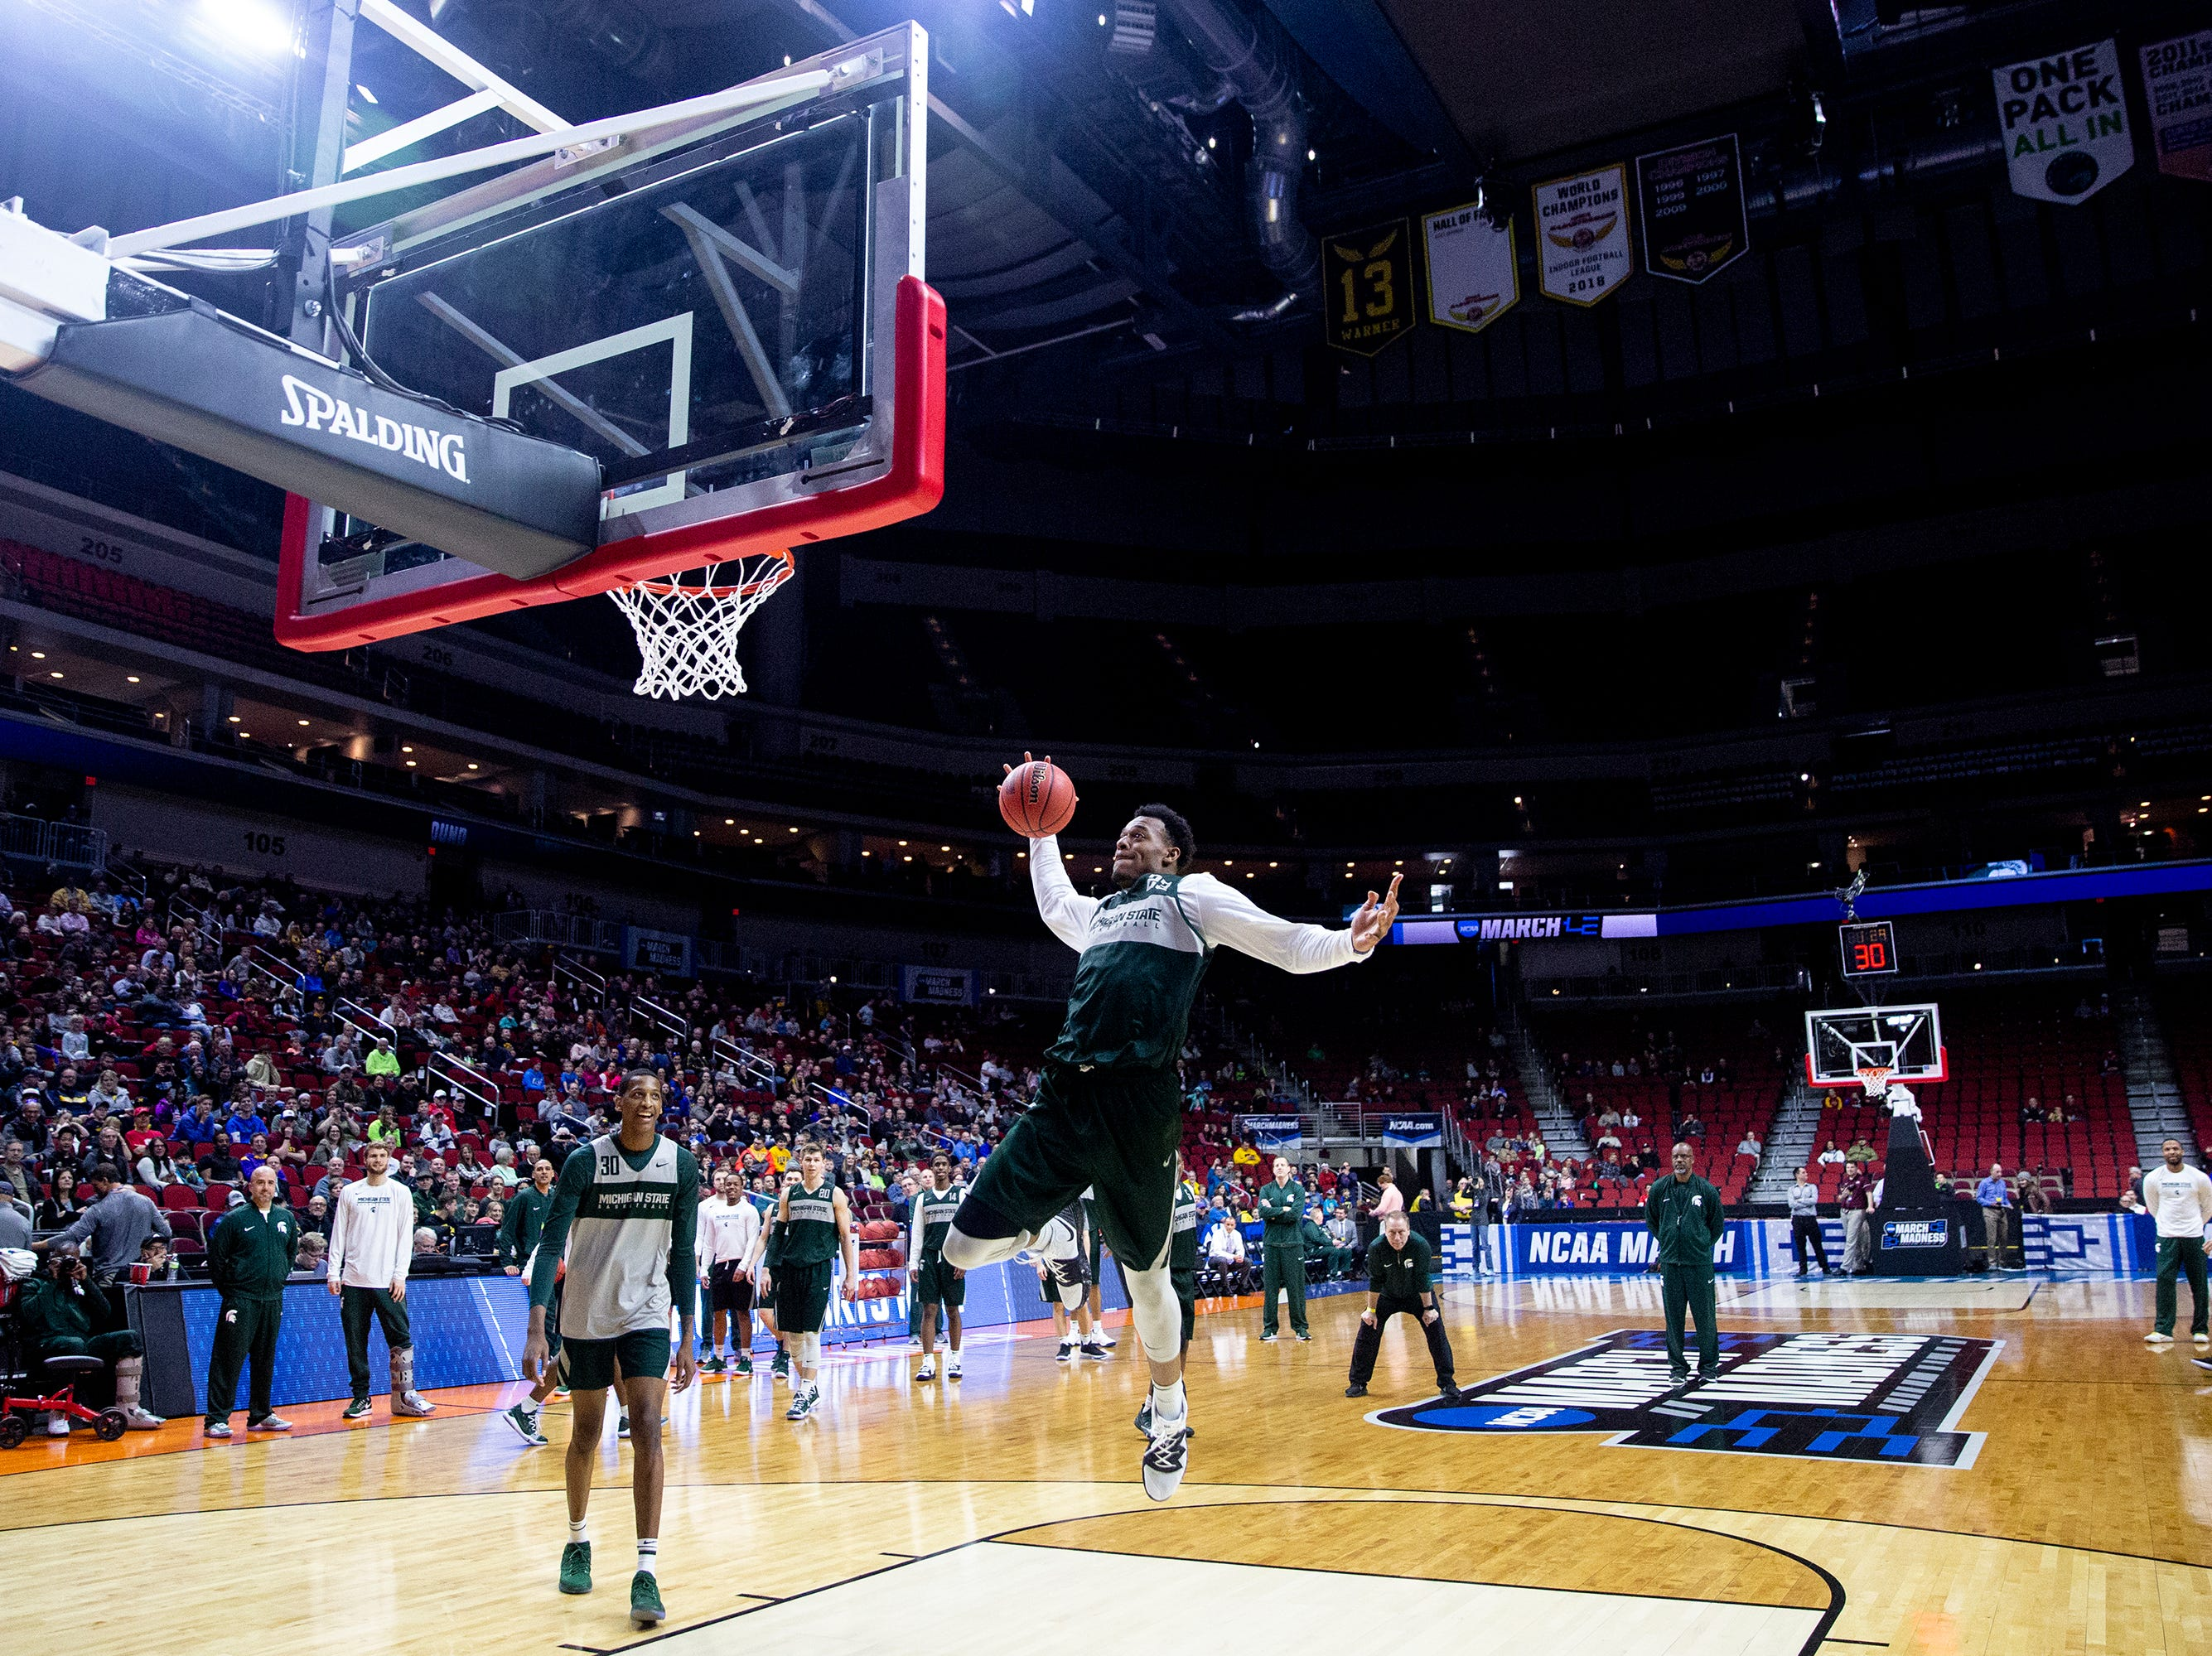 Michigan State's Xavier Tillman attempts a trick shot during Michigan State's open practice before the first round of the NCAA Men's Basketball Tournament on Wednesday, March 20, 2019, at Wells Fargo Arena in Des Moines, Iowa.